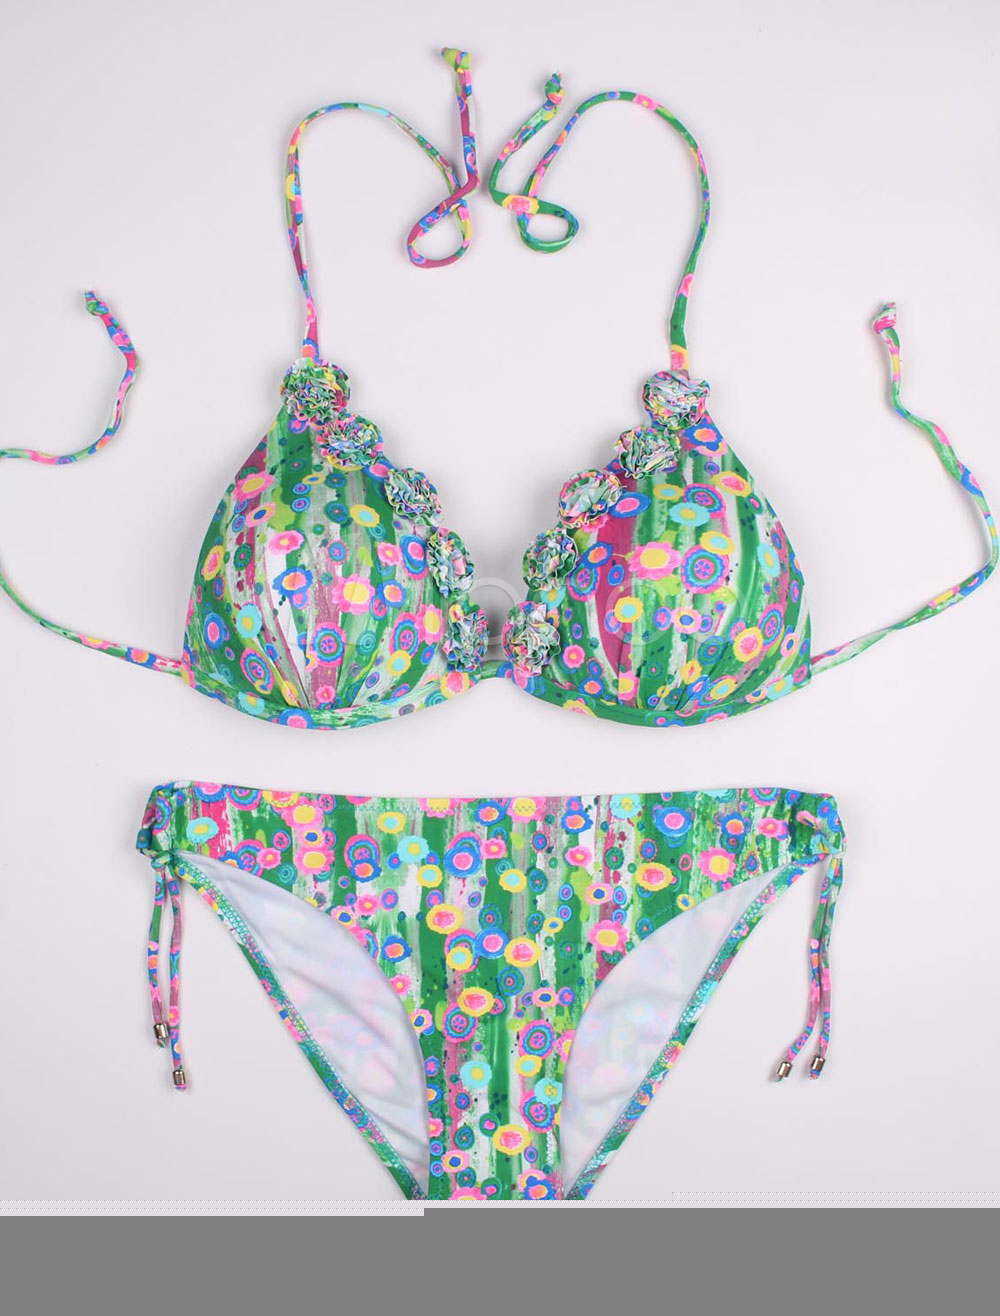 Buy Green Bikini Set Halter Floral Print Beach Swimsuit Women's 2 Piece Bathing Suits for $26.99 in Milanoo store